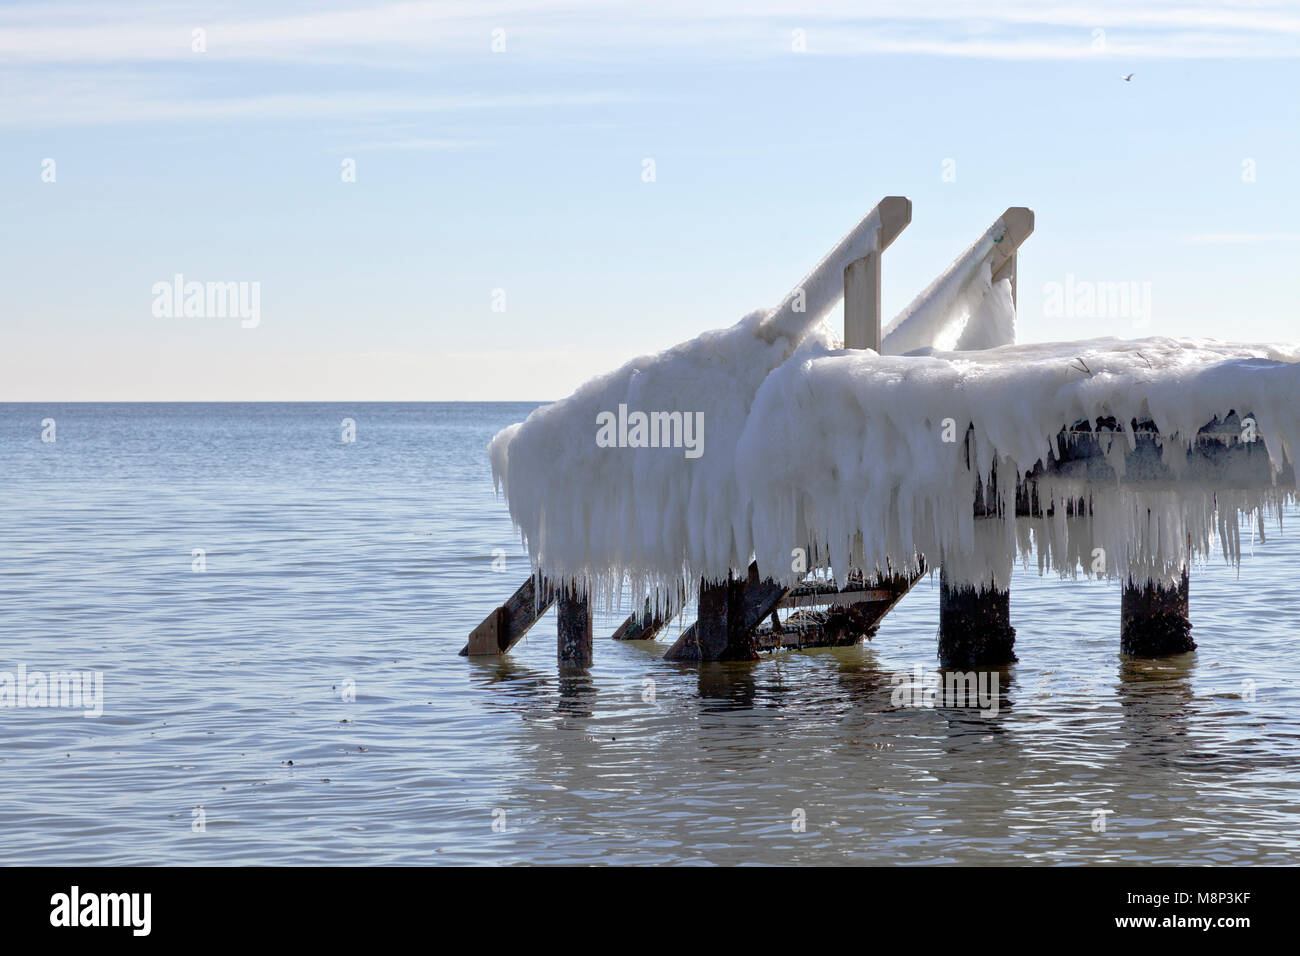 Melting ice formations and icicles on a bathing jetty at Skodsborg on an early, sunny spring day at the Sound / - Stock Image